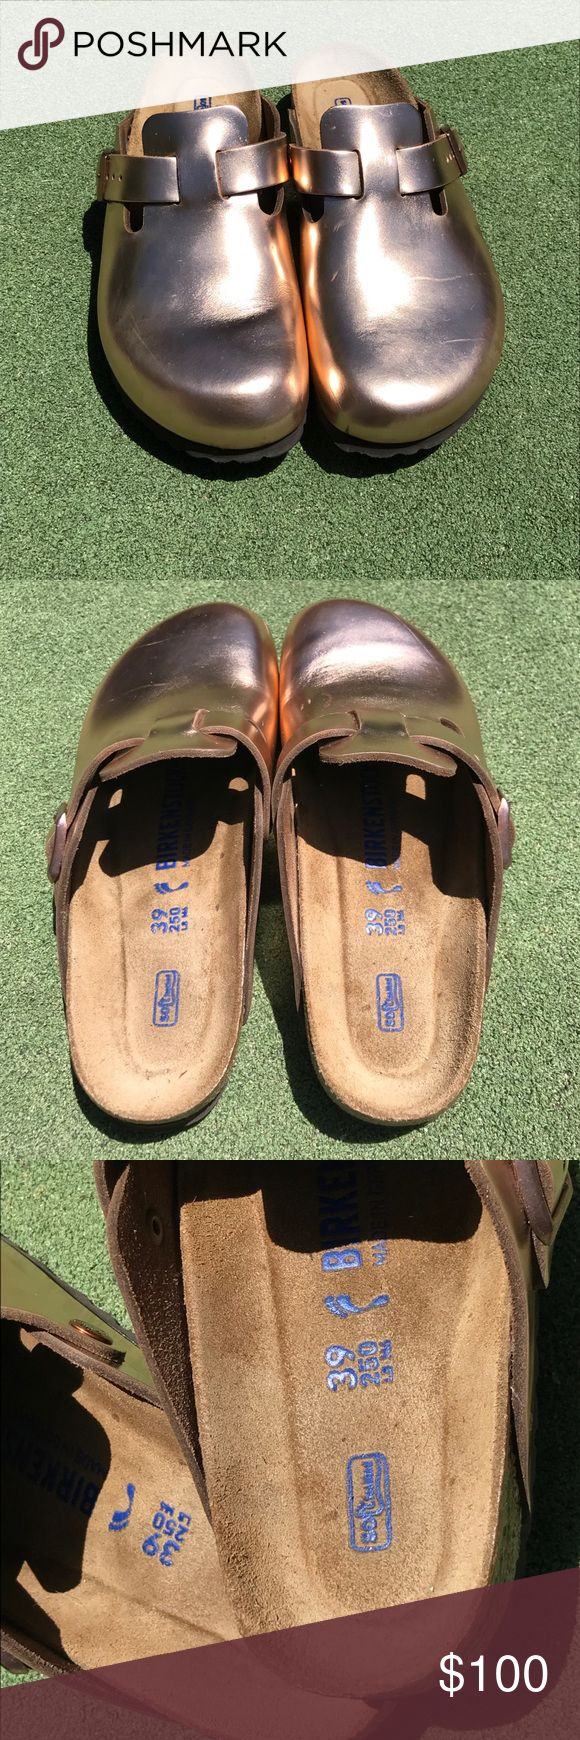 Birkenstock Boston Metallic Copper Soft Footbed 39 Birkenstock Boston Metallic Copper Soft Footbed.  These are leather uppers.  European size 39 or US size 8/8.5.  Refer to Birkenstock Size chart if you are unfamiliar with their shoes.  Worn once around house only.  Essentially brand new with minor scratching on toe area as seen in pictures.  Price reflects slight scratching.  !!!**NO TRADES**!!!  Price is Firm!  No offers please.  Use Buy It Now!  If you want a discount, make a bundle…